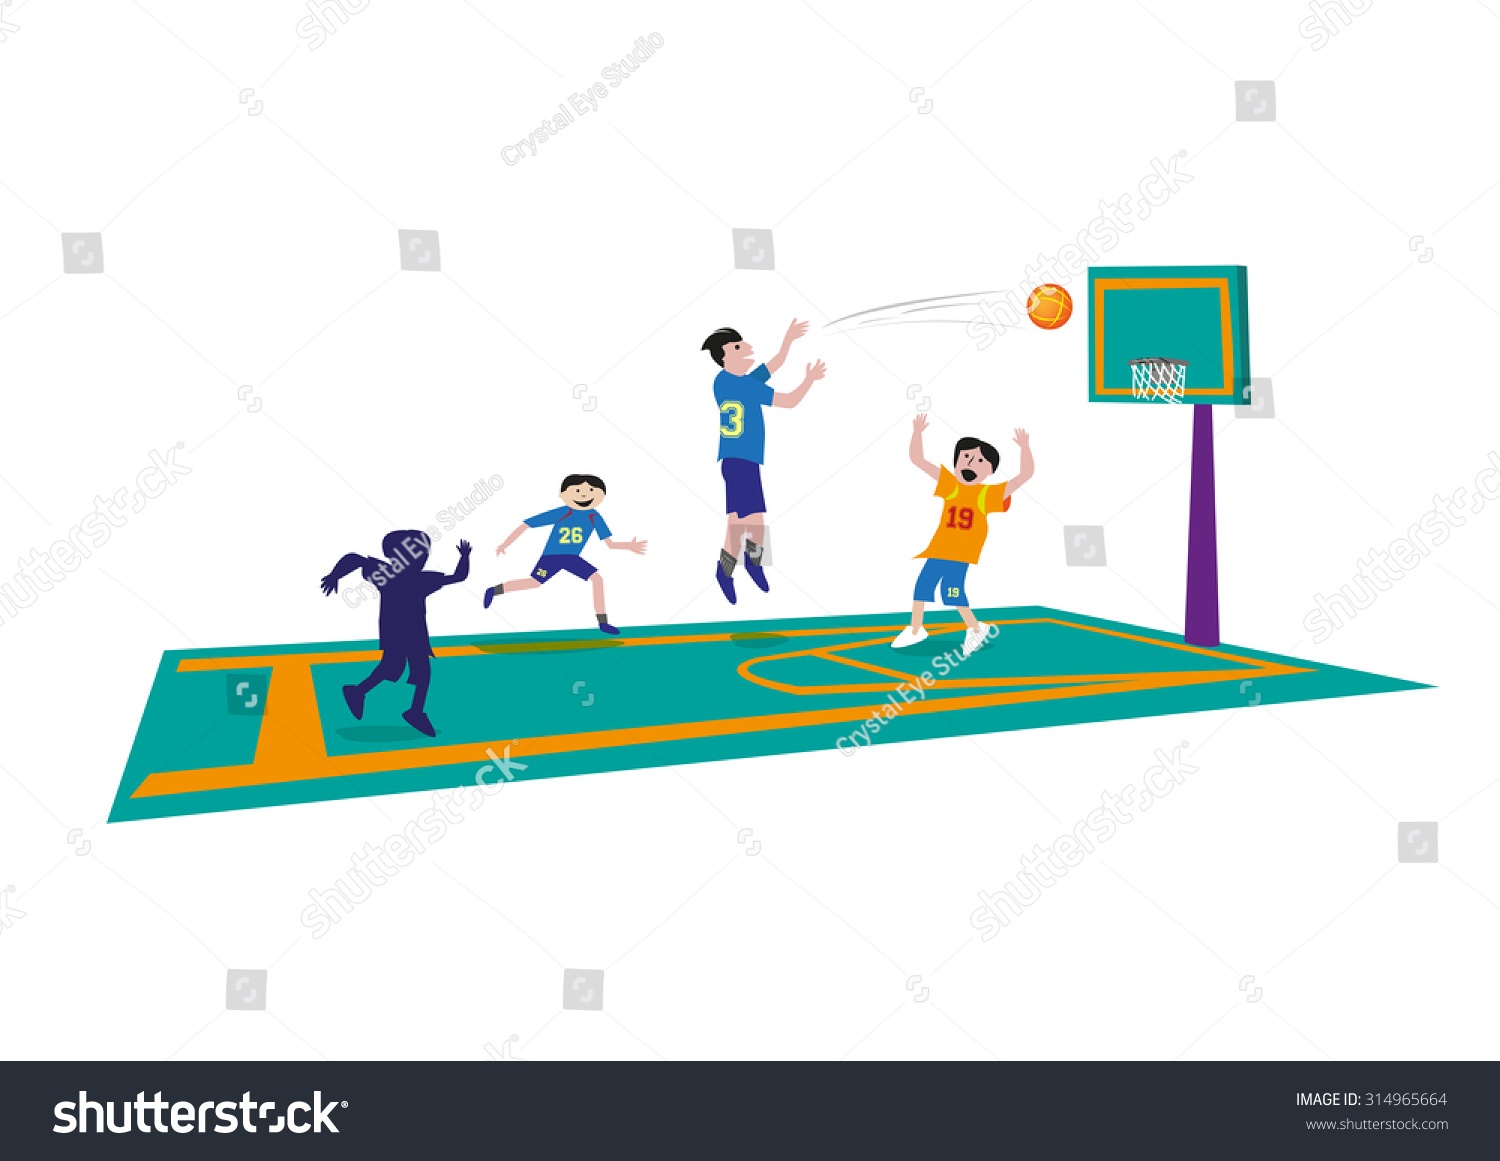 Basketball Game Clipart.